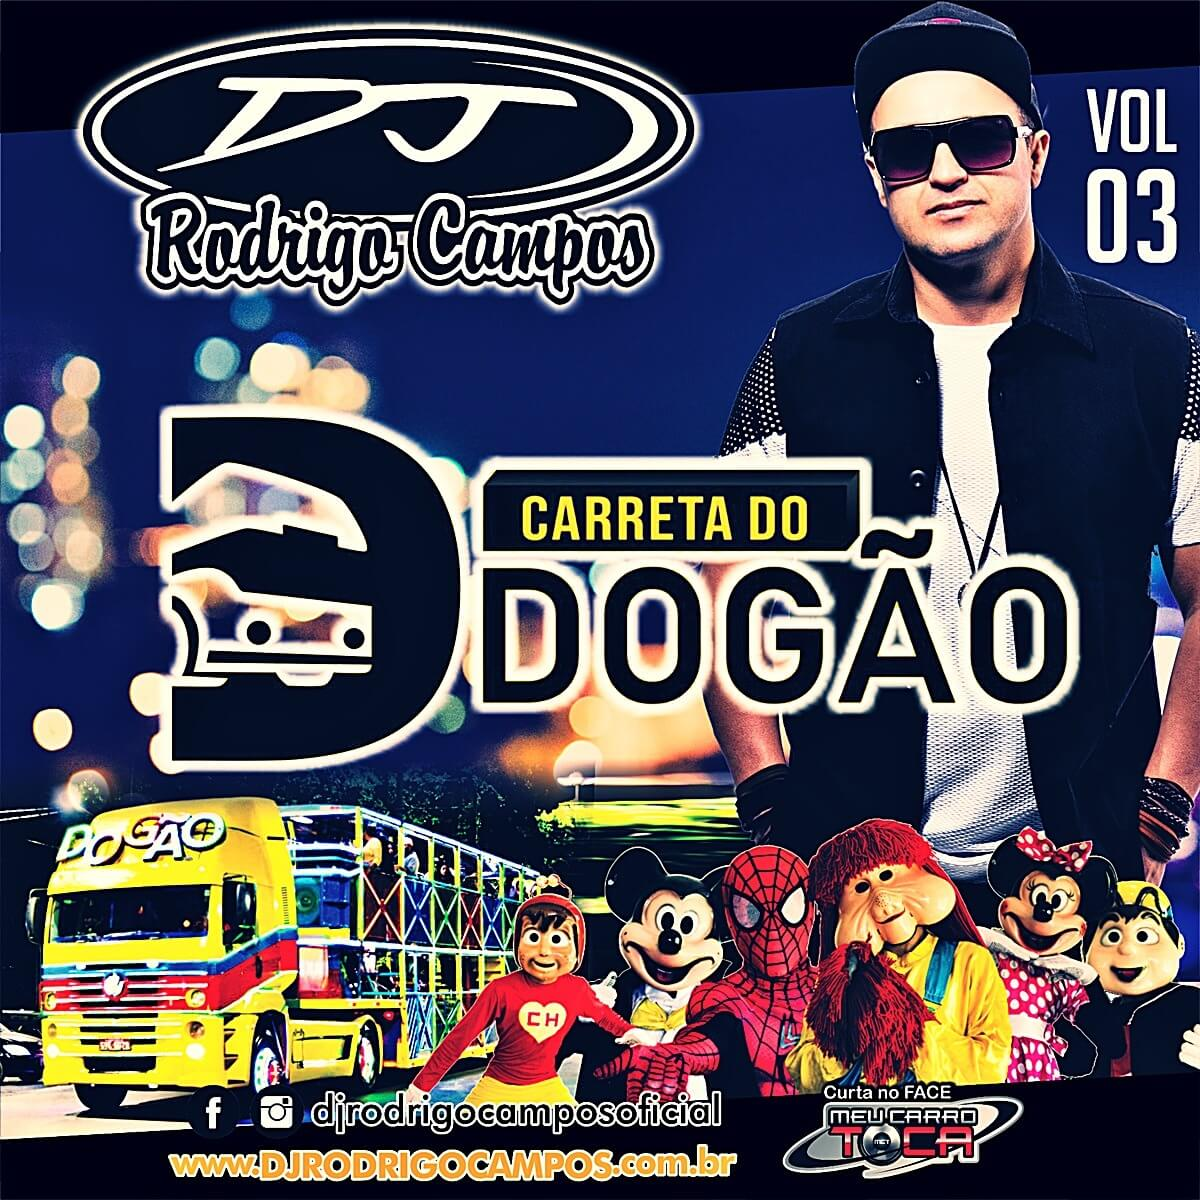 Carreta do Dogao Vol 03